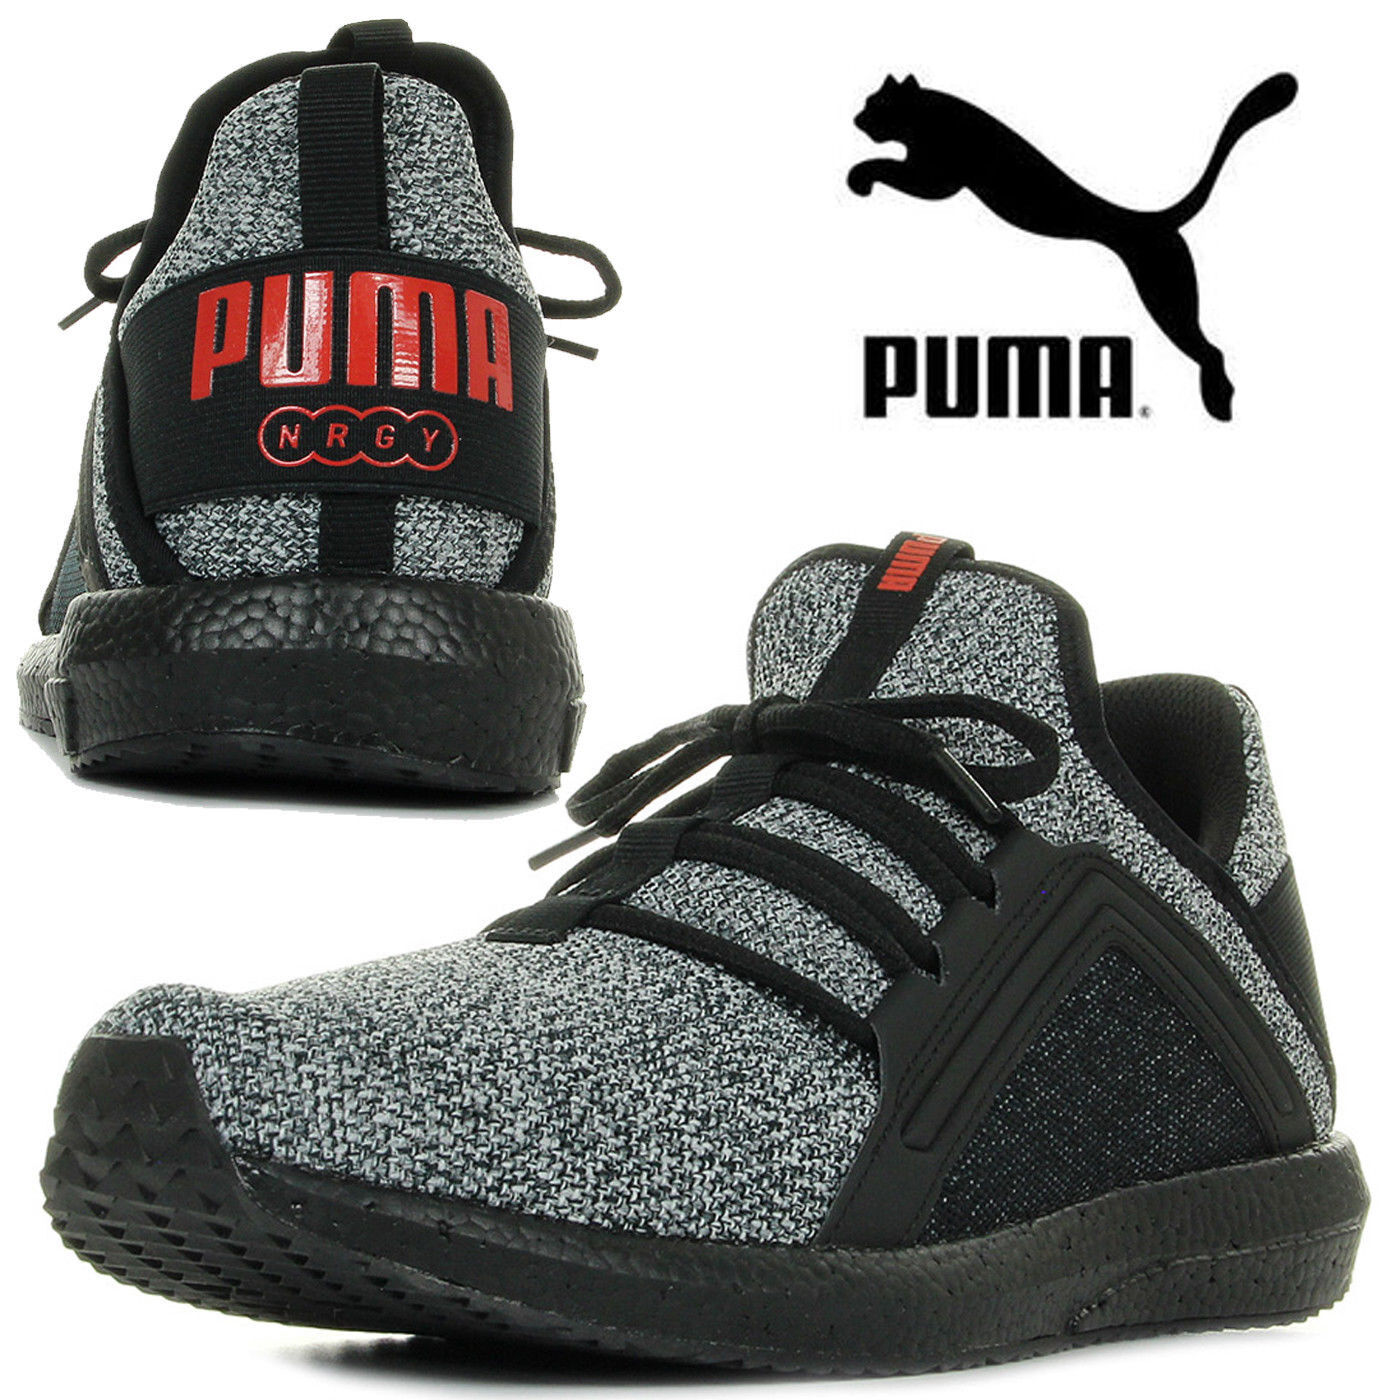 Details about PUMA Men's Trainers MEGA NRGY Knit Sports Running Sneakers Jogging Grey Black